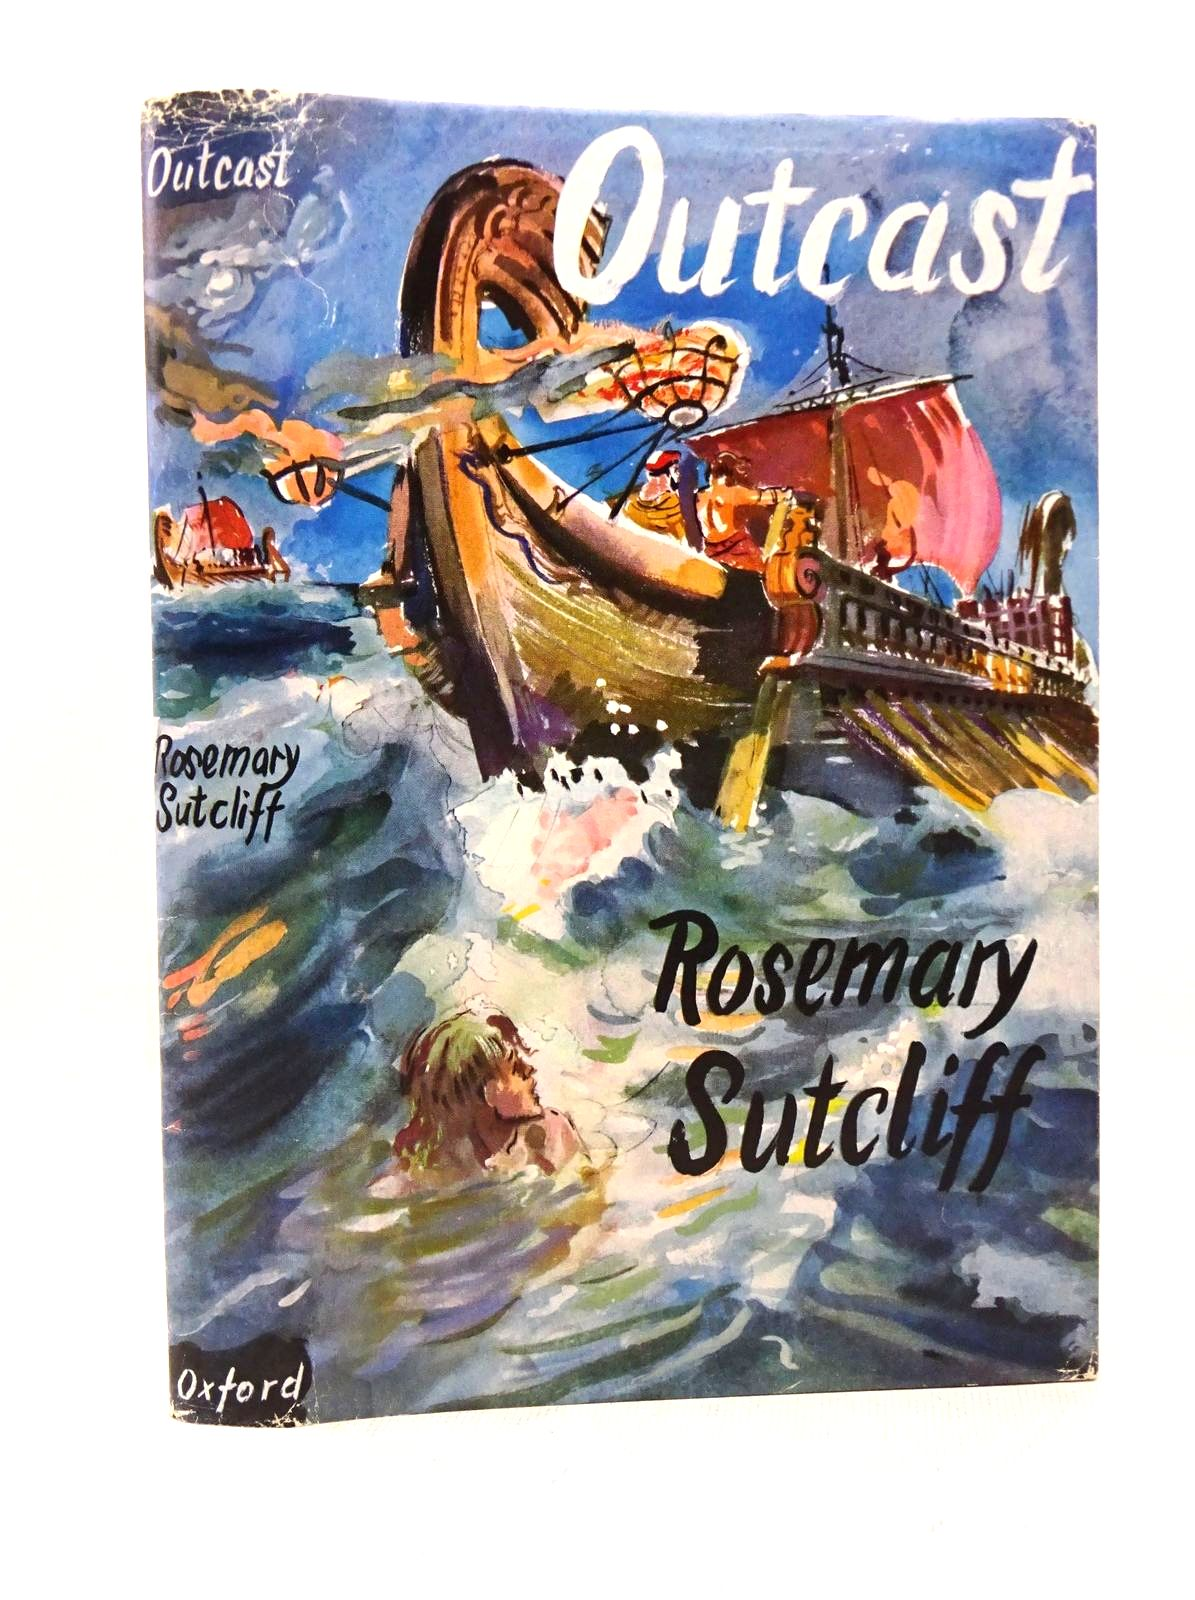 Photo of OUTCAST written by Sutcliff, Rosemary illustrated by Kennedy, Richard published by Oxford University Press (STOCK CODE: 1317673)  for sale by Stella & Rose's Books